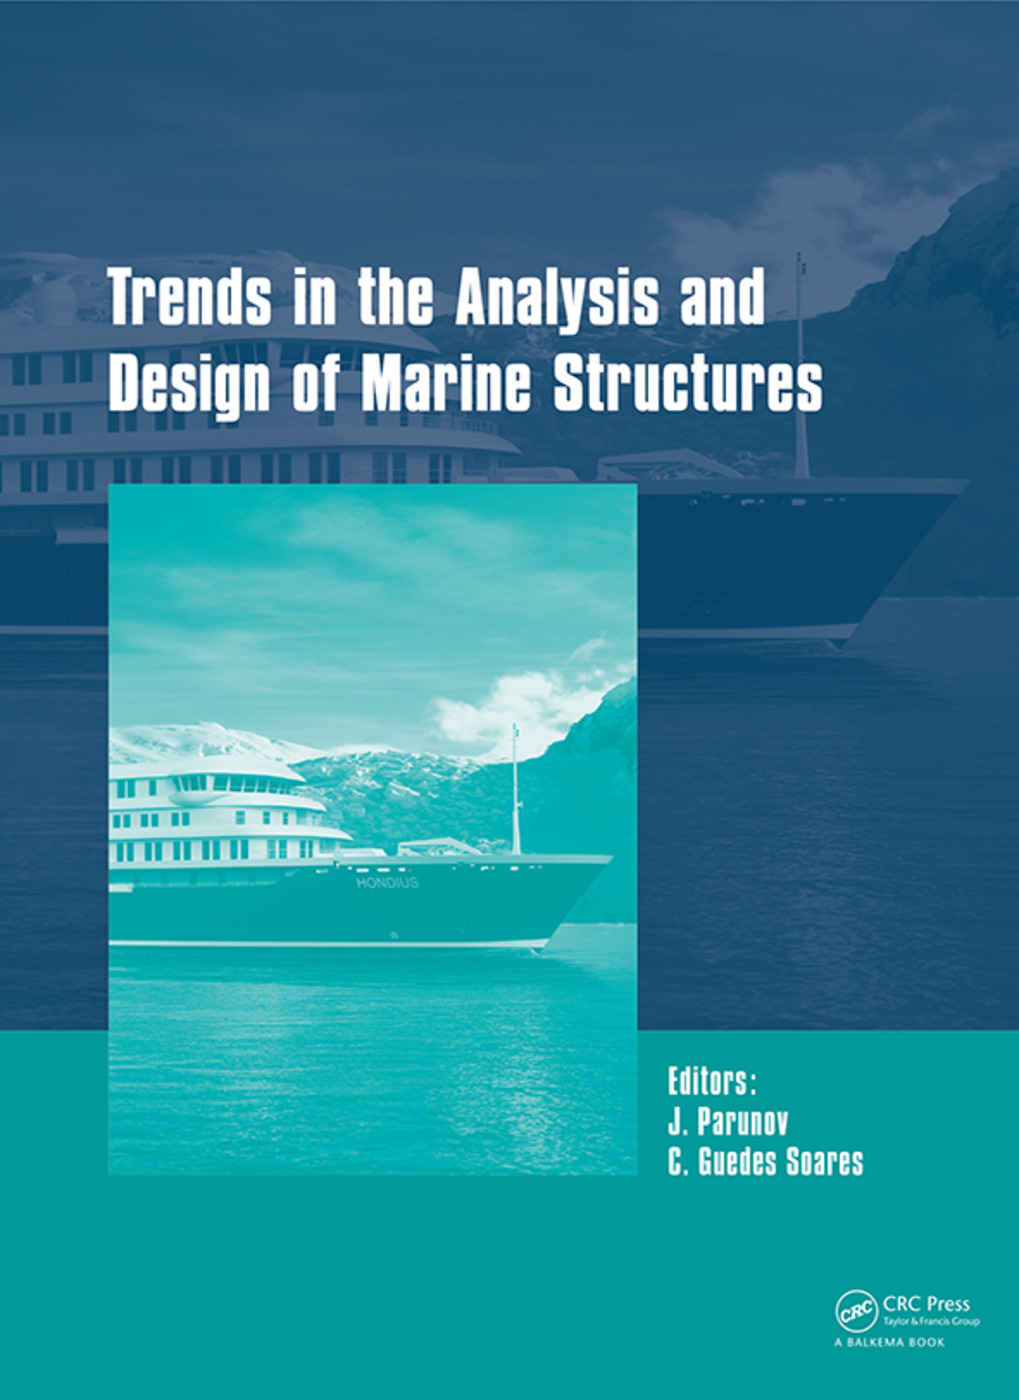 Trends in the Analysis and Design of Marine Structures: Proceedings of the 7th International Conference on Marine Structures (MARSTRUCT 2019, Dubrovnik, Croatia, 6-8 May 2019) book cover